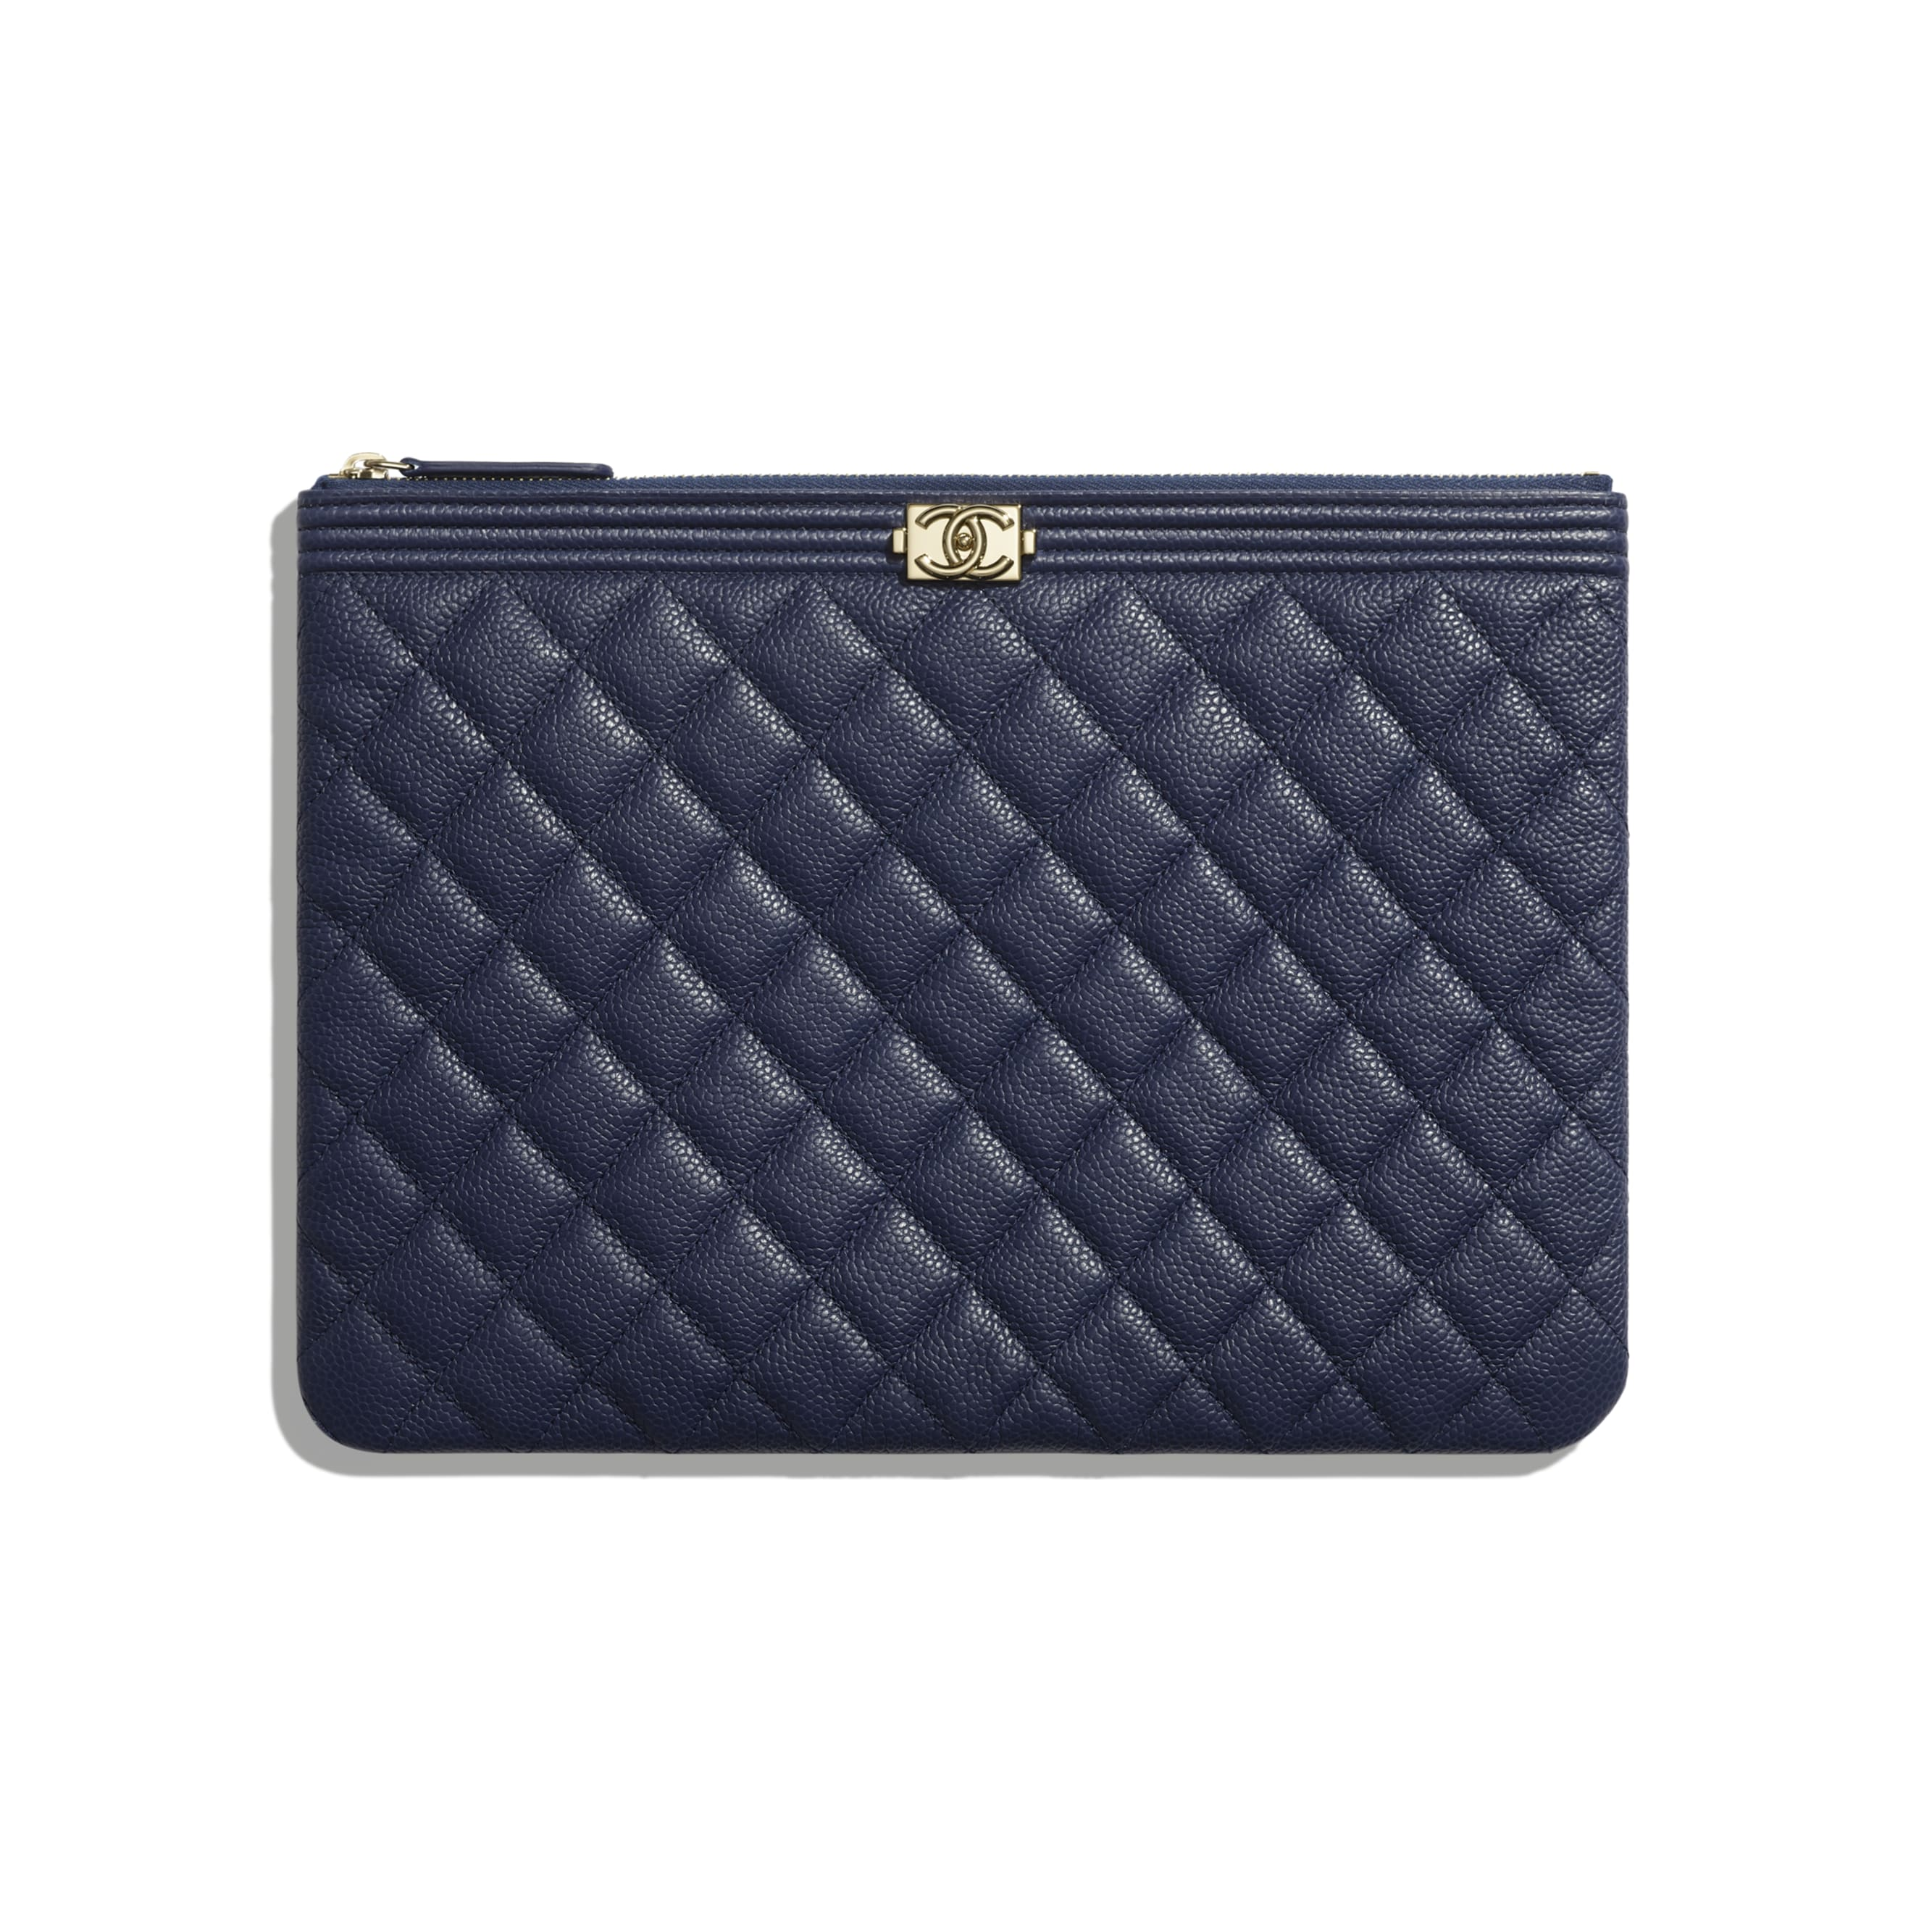 BOY CHANEL Pouch - Navy Blue - Grained Calfskin & Gold-Tone Metal - Default view - see standard sized version